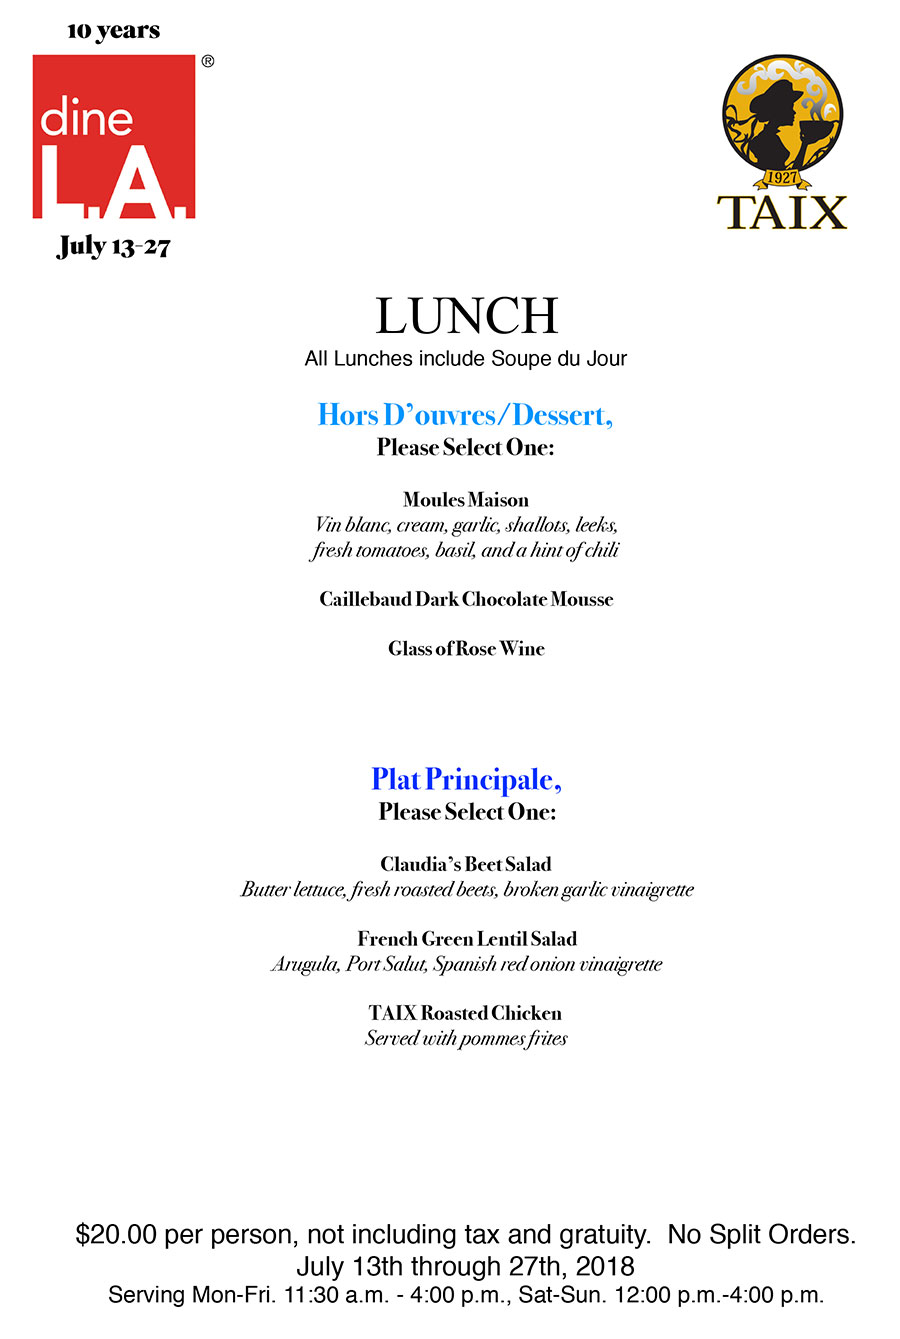 dine l.a. – lunch menu | taix french restaurant - los angeles, echo